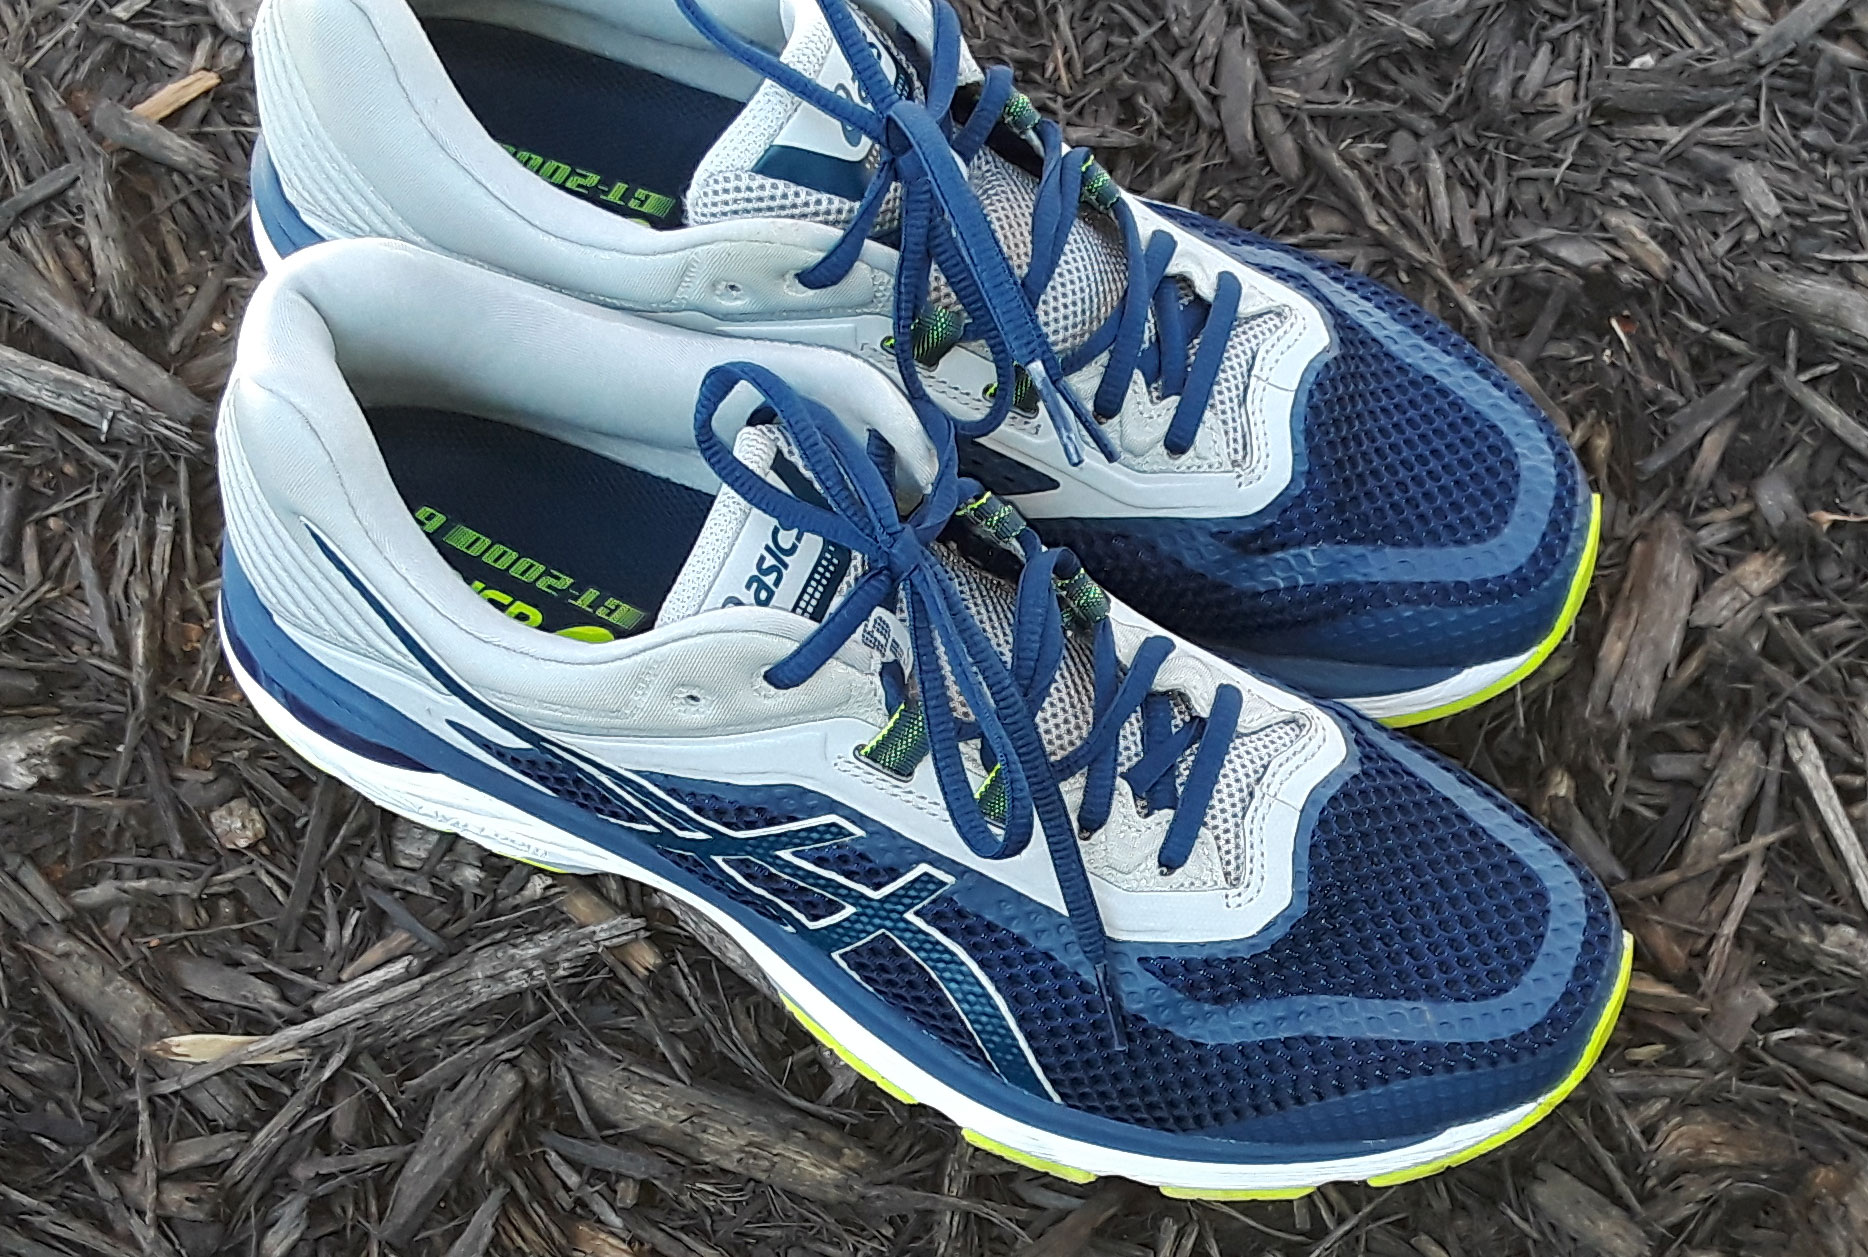 Asics GT 2000 6 Review » Believe in the Run